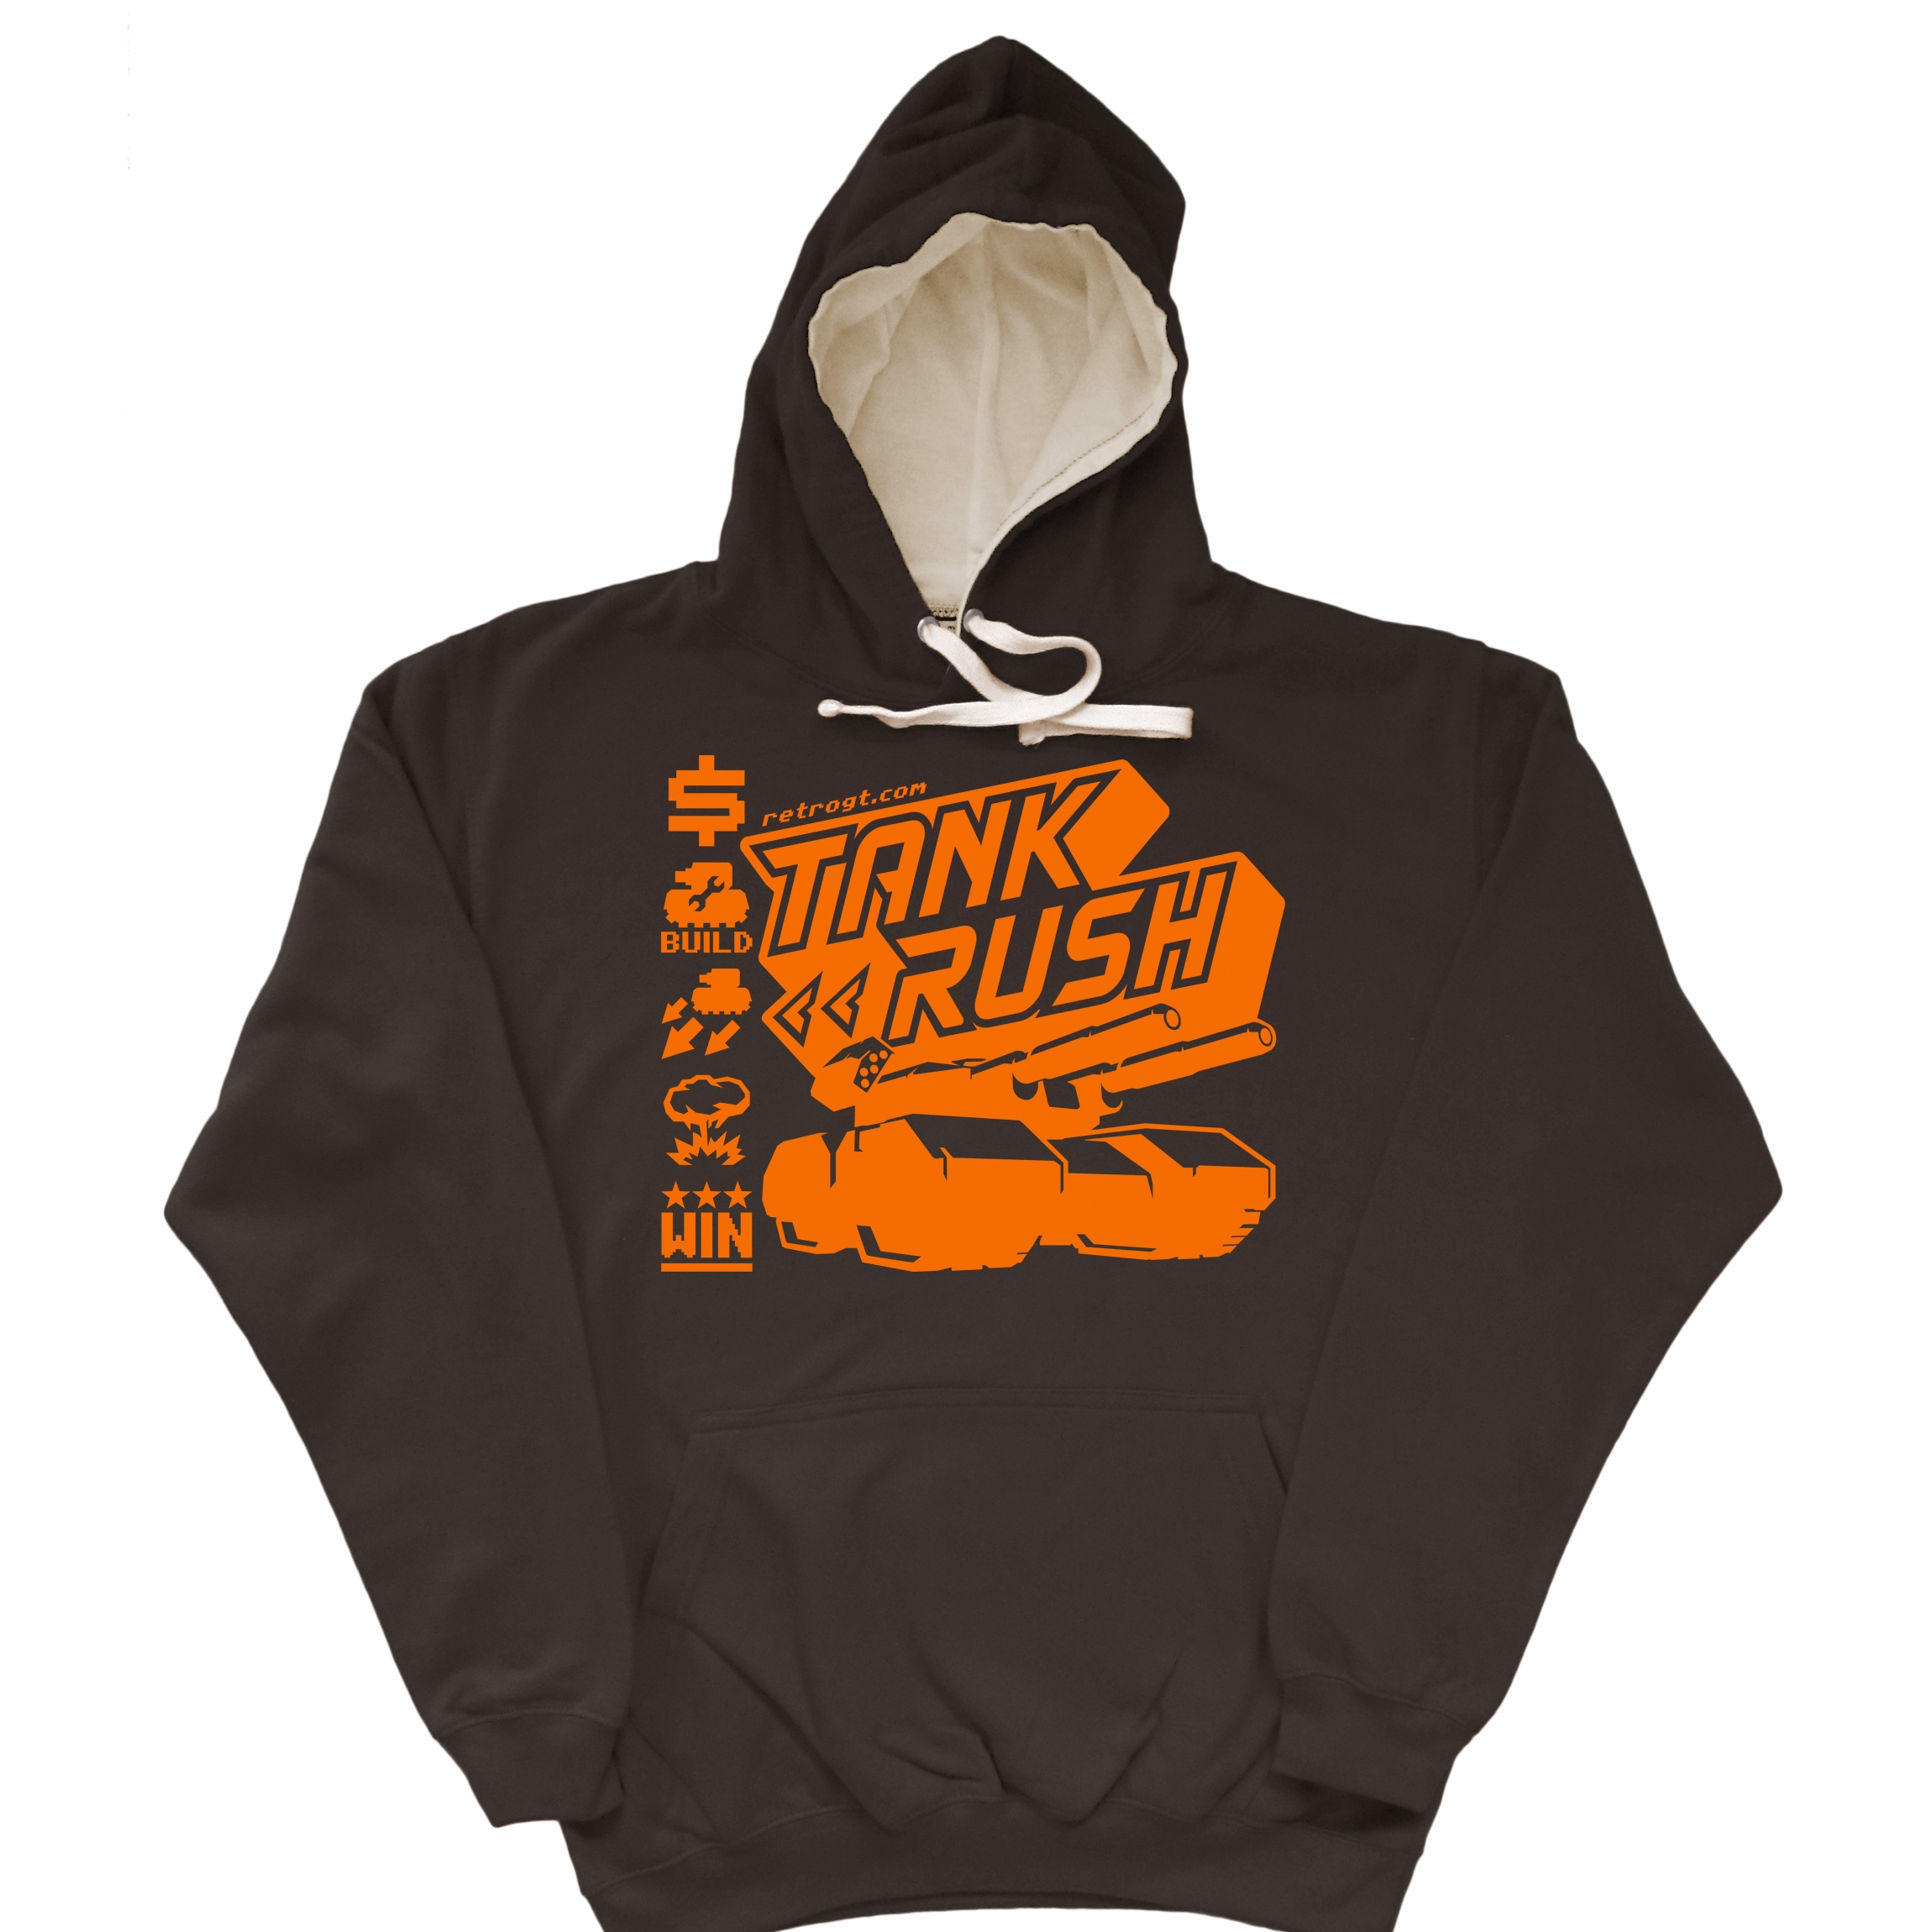 Alternative photo: Tank Rush Hoodie